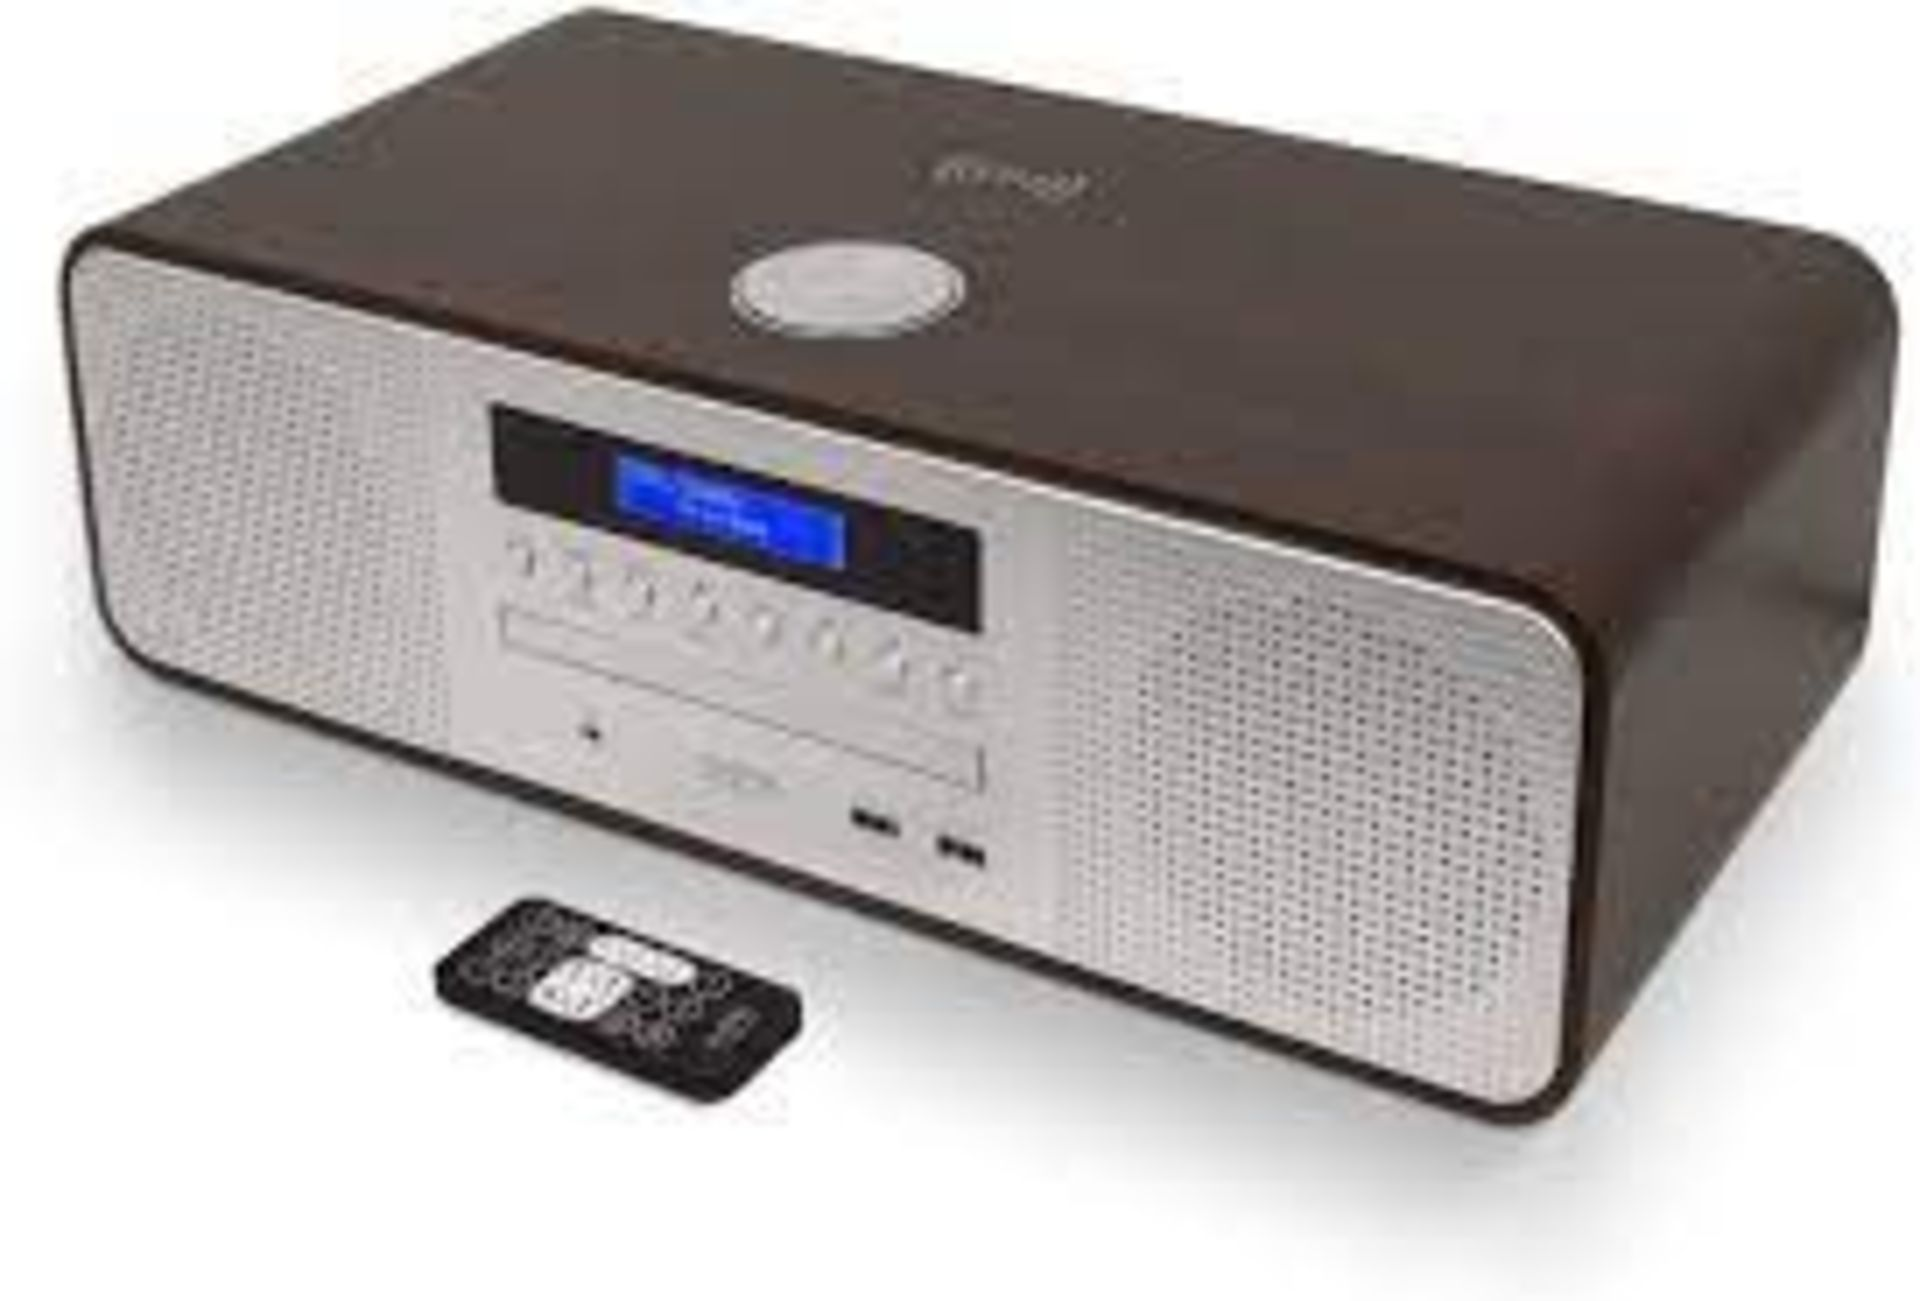 BOXED AUDIBLE FIDELITY AF-10 COMPACVT HI-FI STEREO SYSTEM WITH DAB/FM BLUETOOTH CD USB PLAYBACK